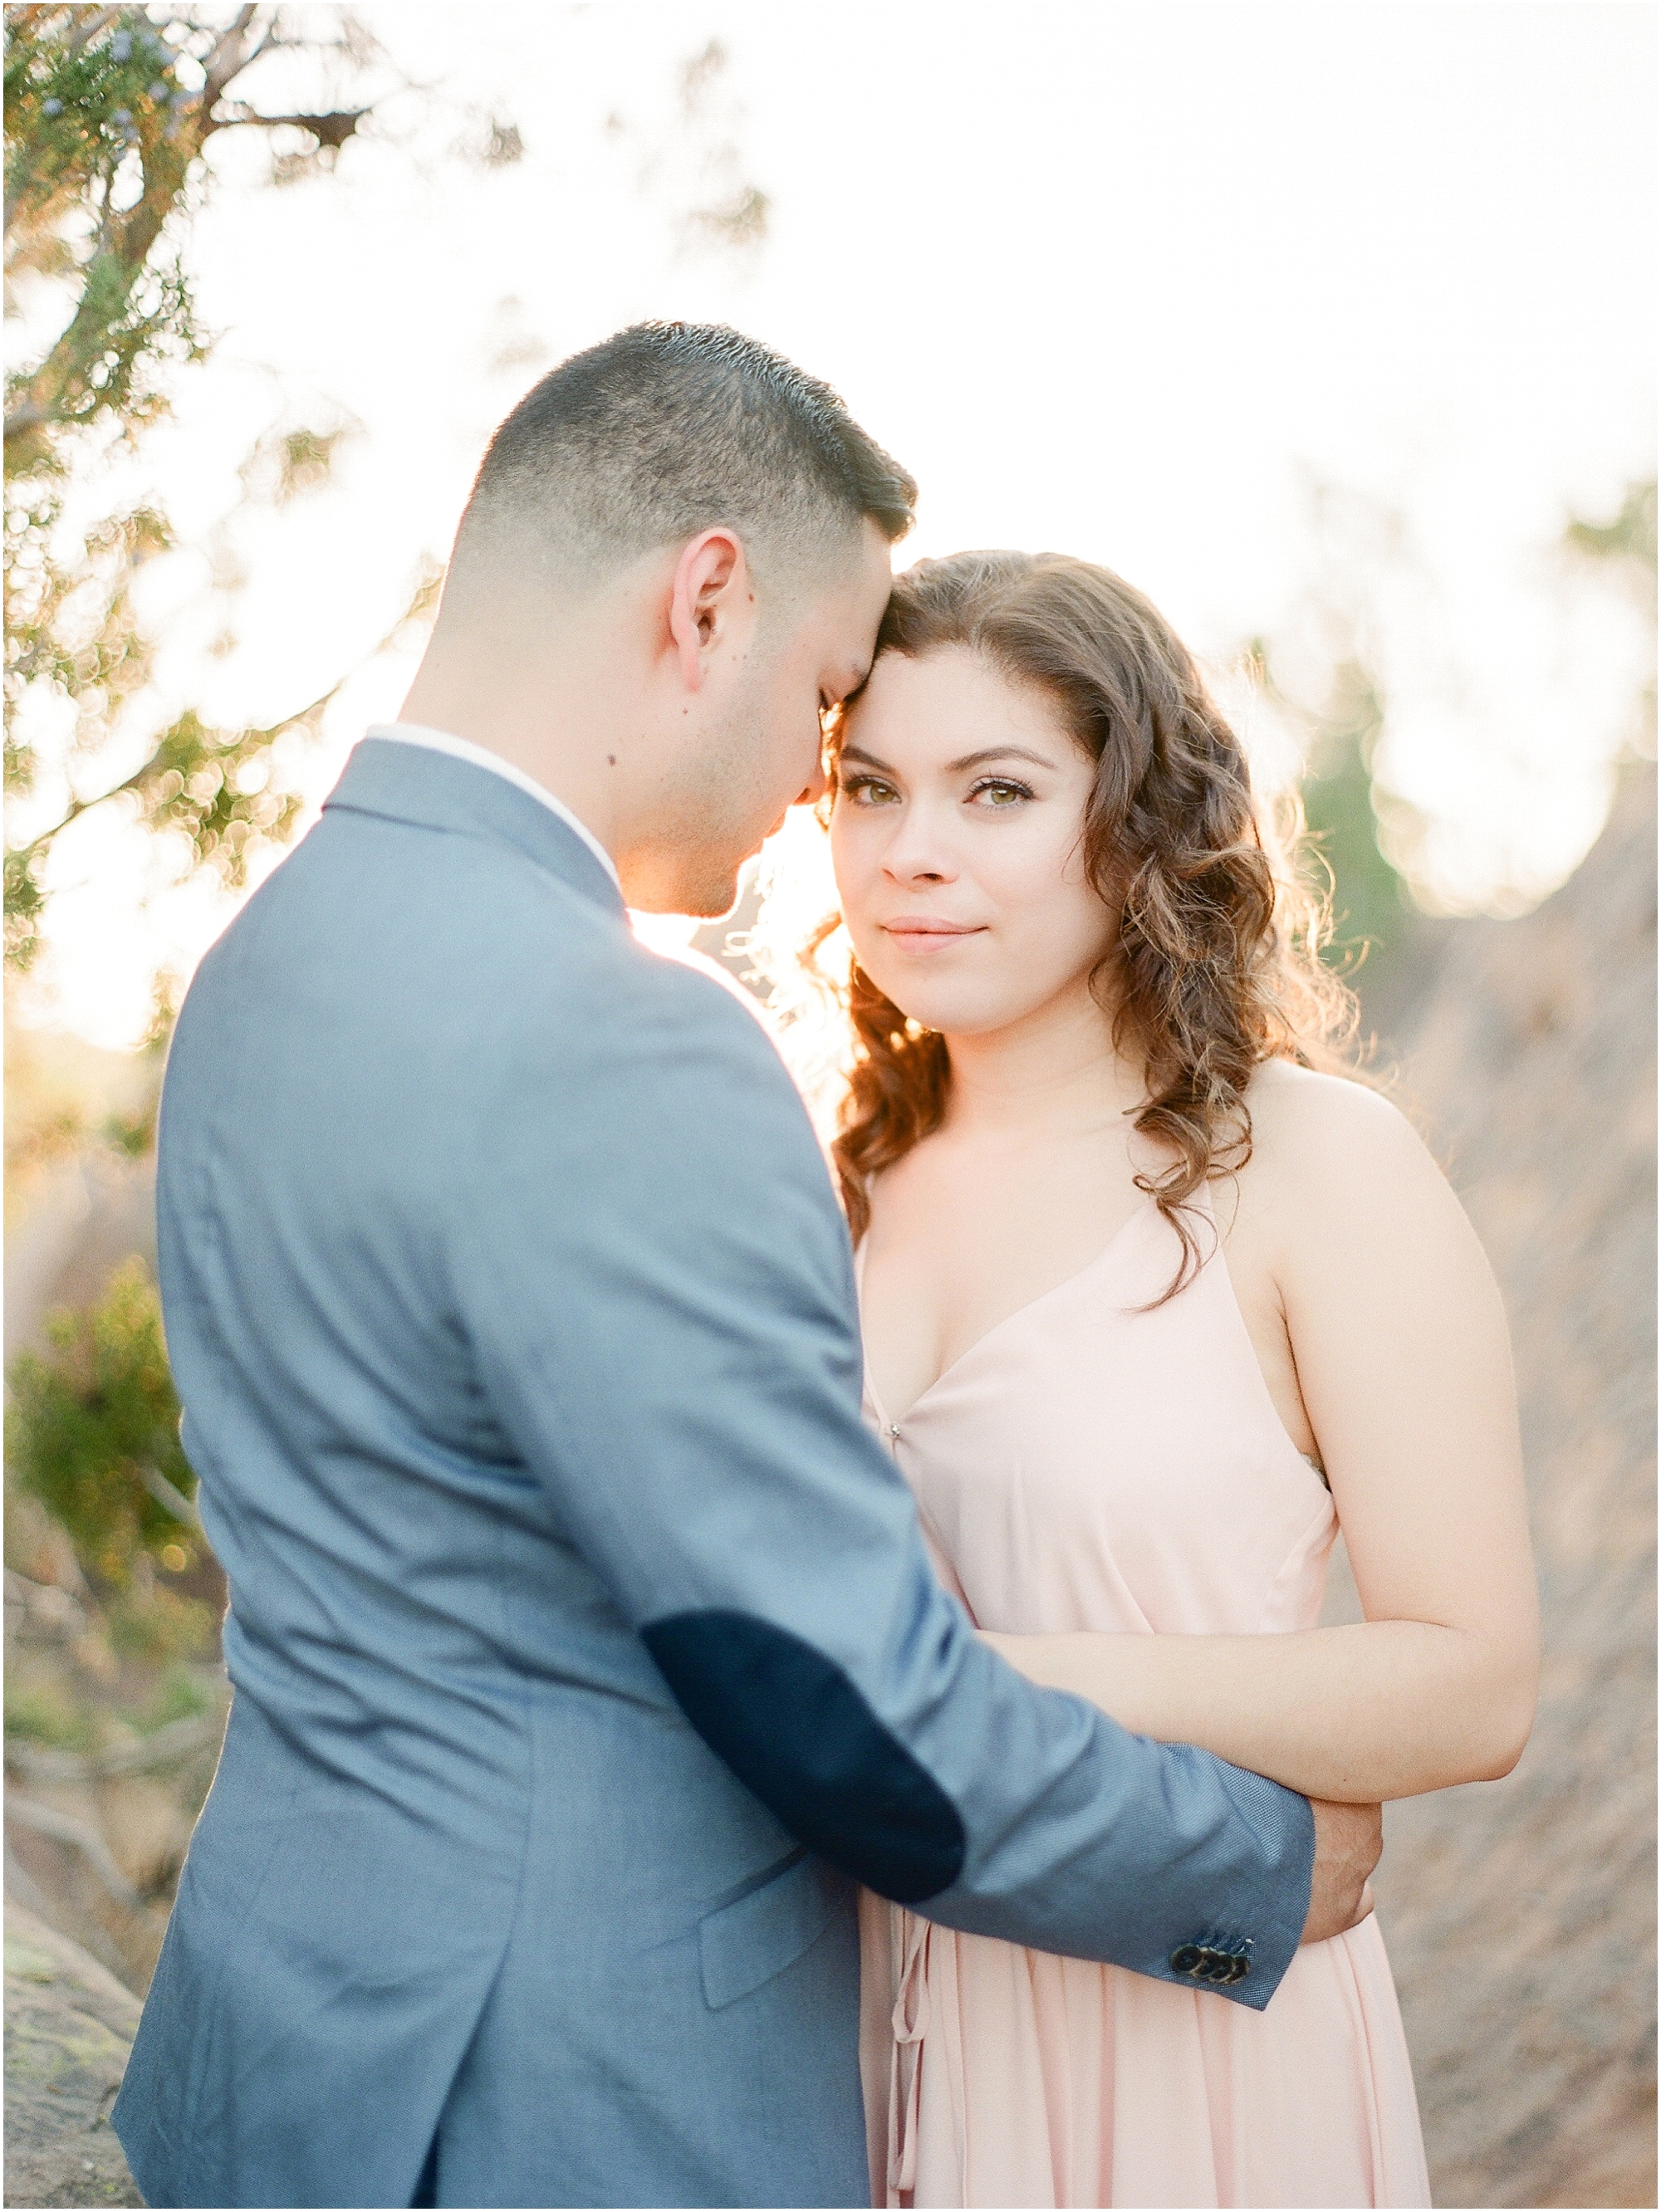 Vasquez-rocks-engagement-session-68.jpg